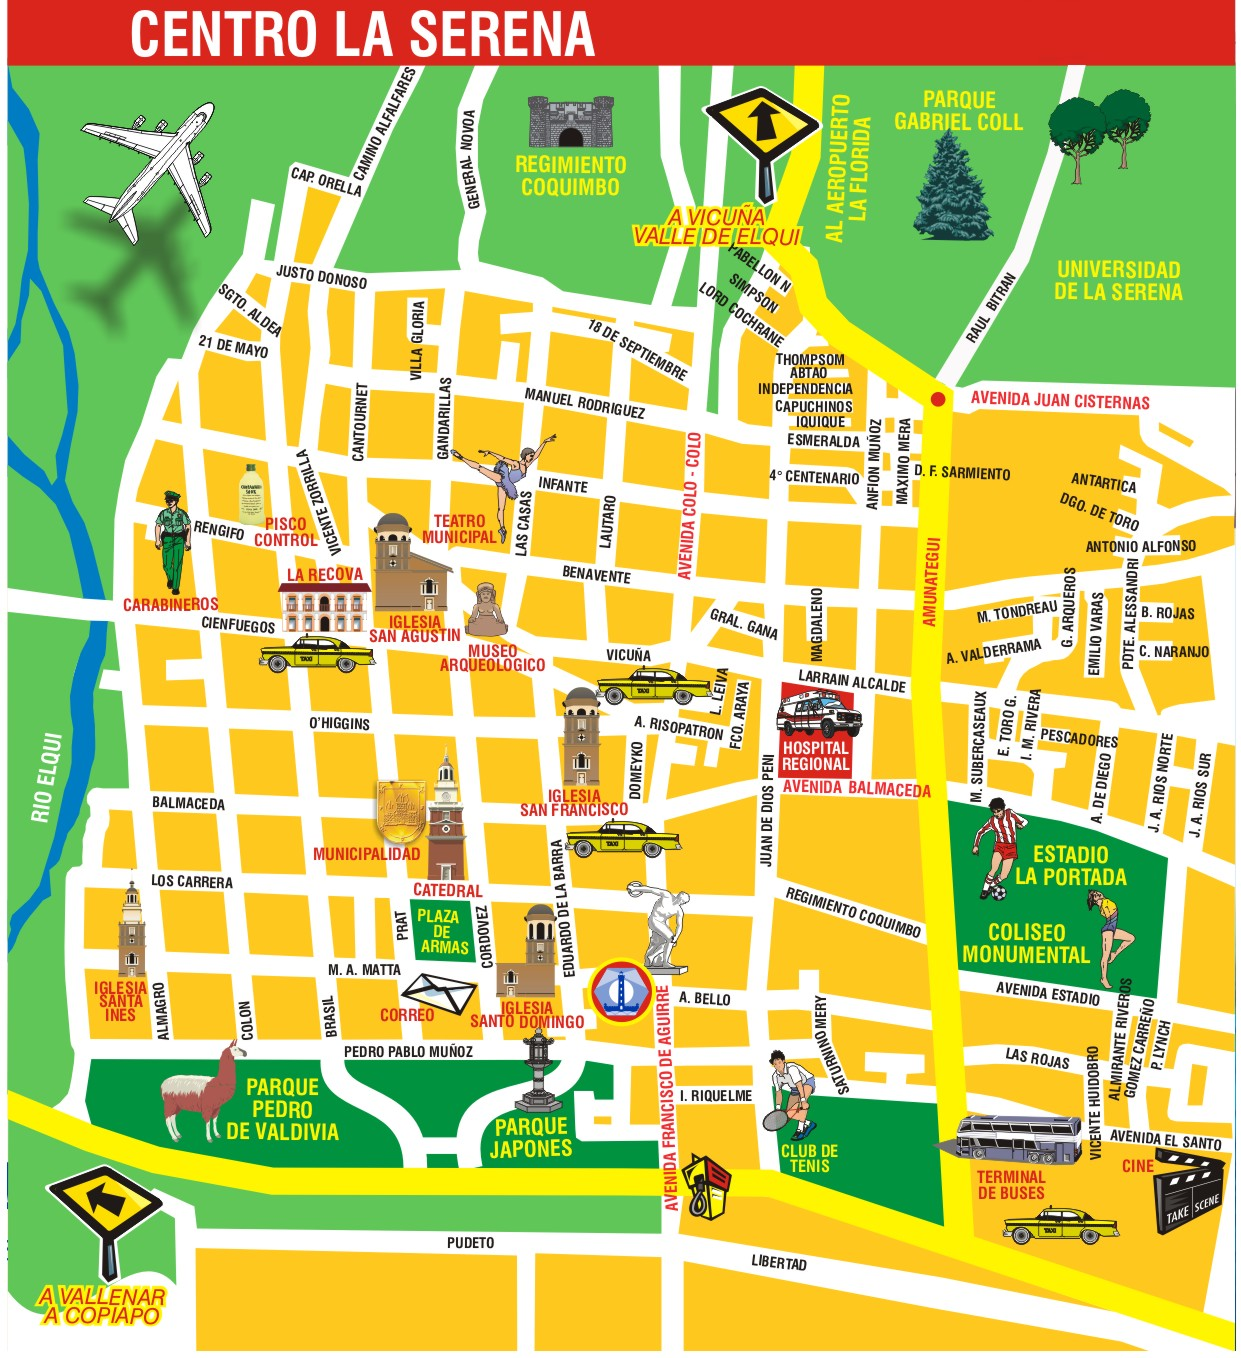 La Serena Center Tourist Map - La Serena Chile • mappery on old map of chile, easy map of chile, small map of chile, show map of chile, enlarged map of chile, pretty map of chile,